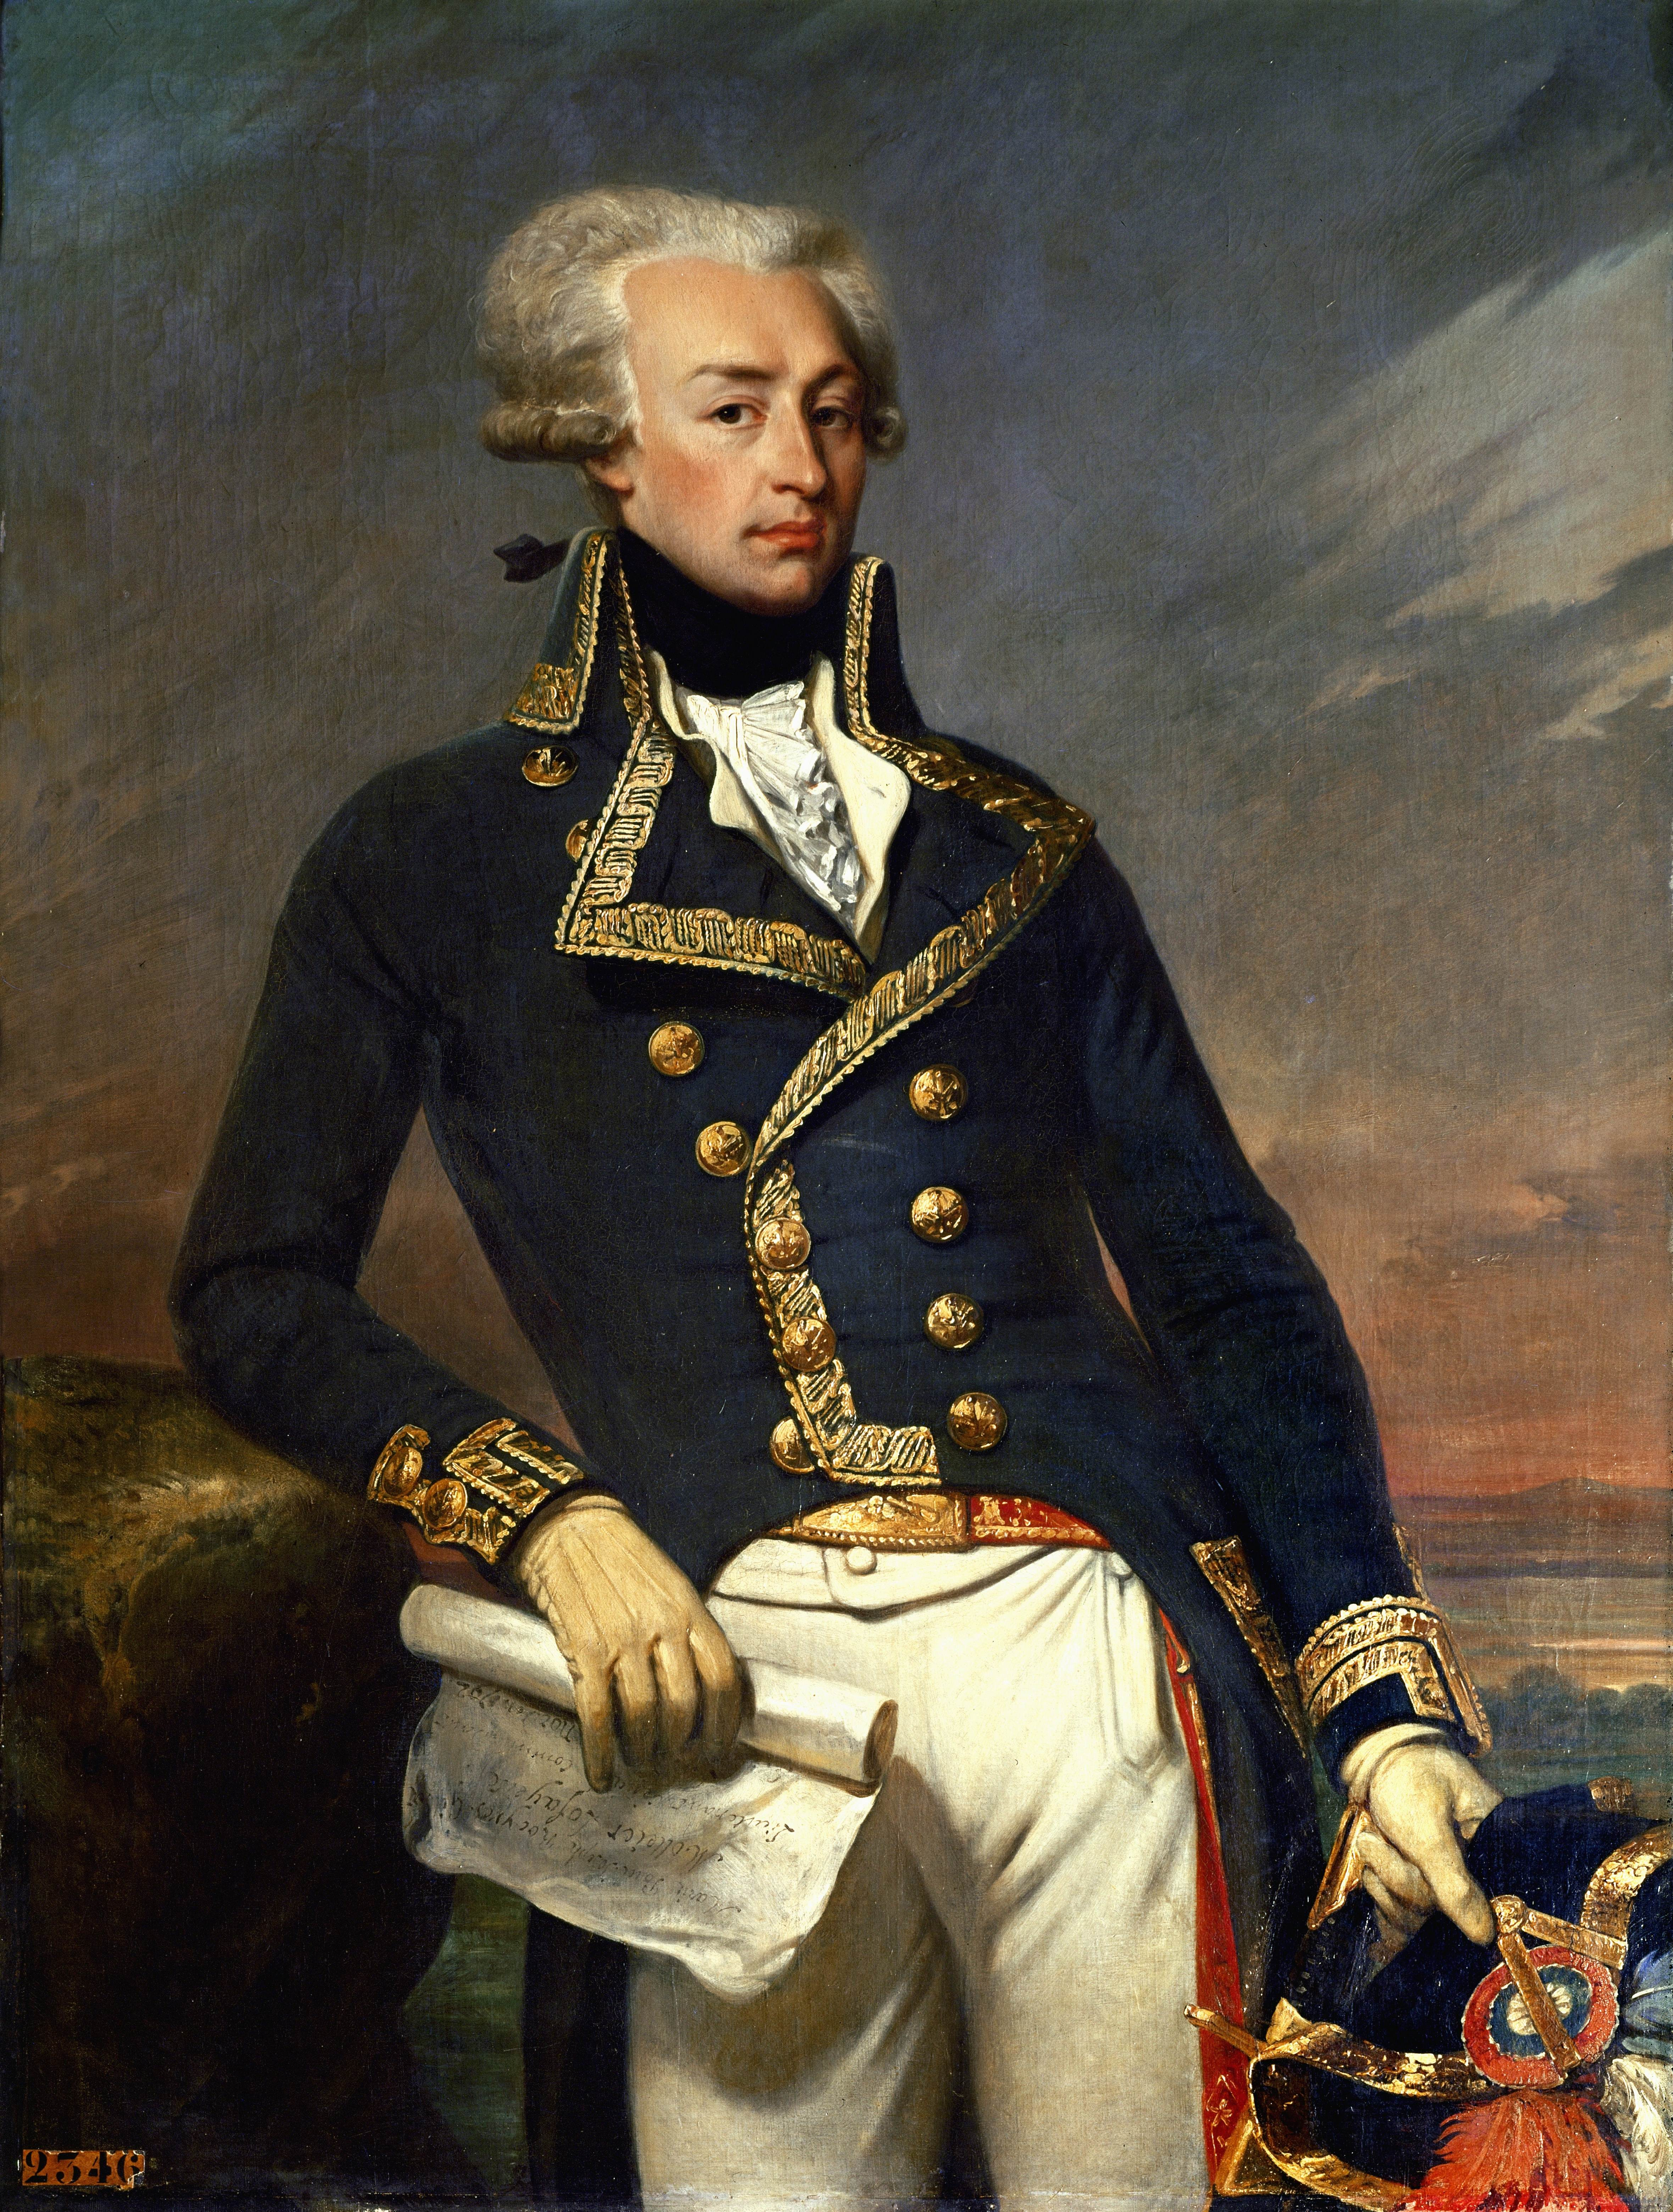 10 Things You May Not Know About the Marquis de Lafayette